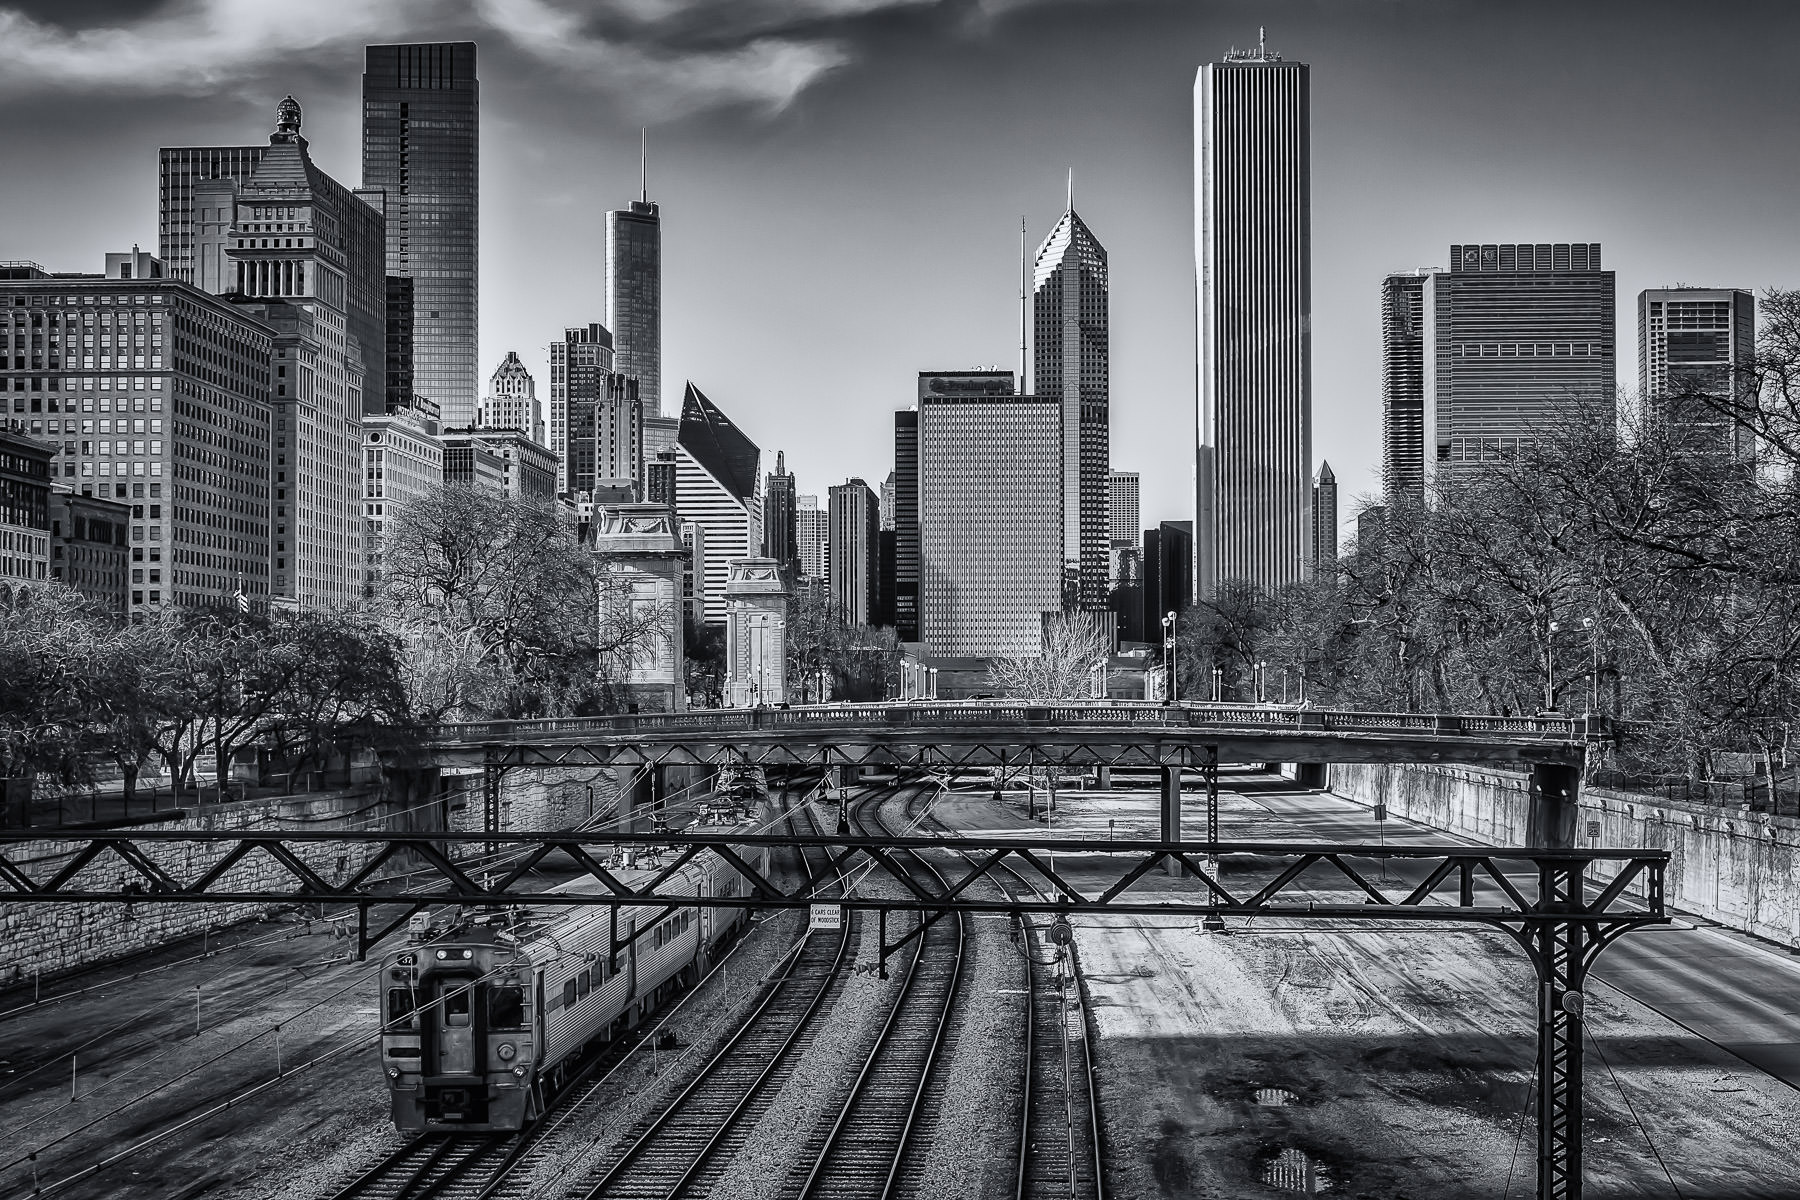 The Metra Electric and South Shore Line tracks pass through Chicago's Grant Park as the city's skyline rises in the distance.